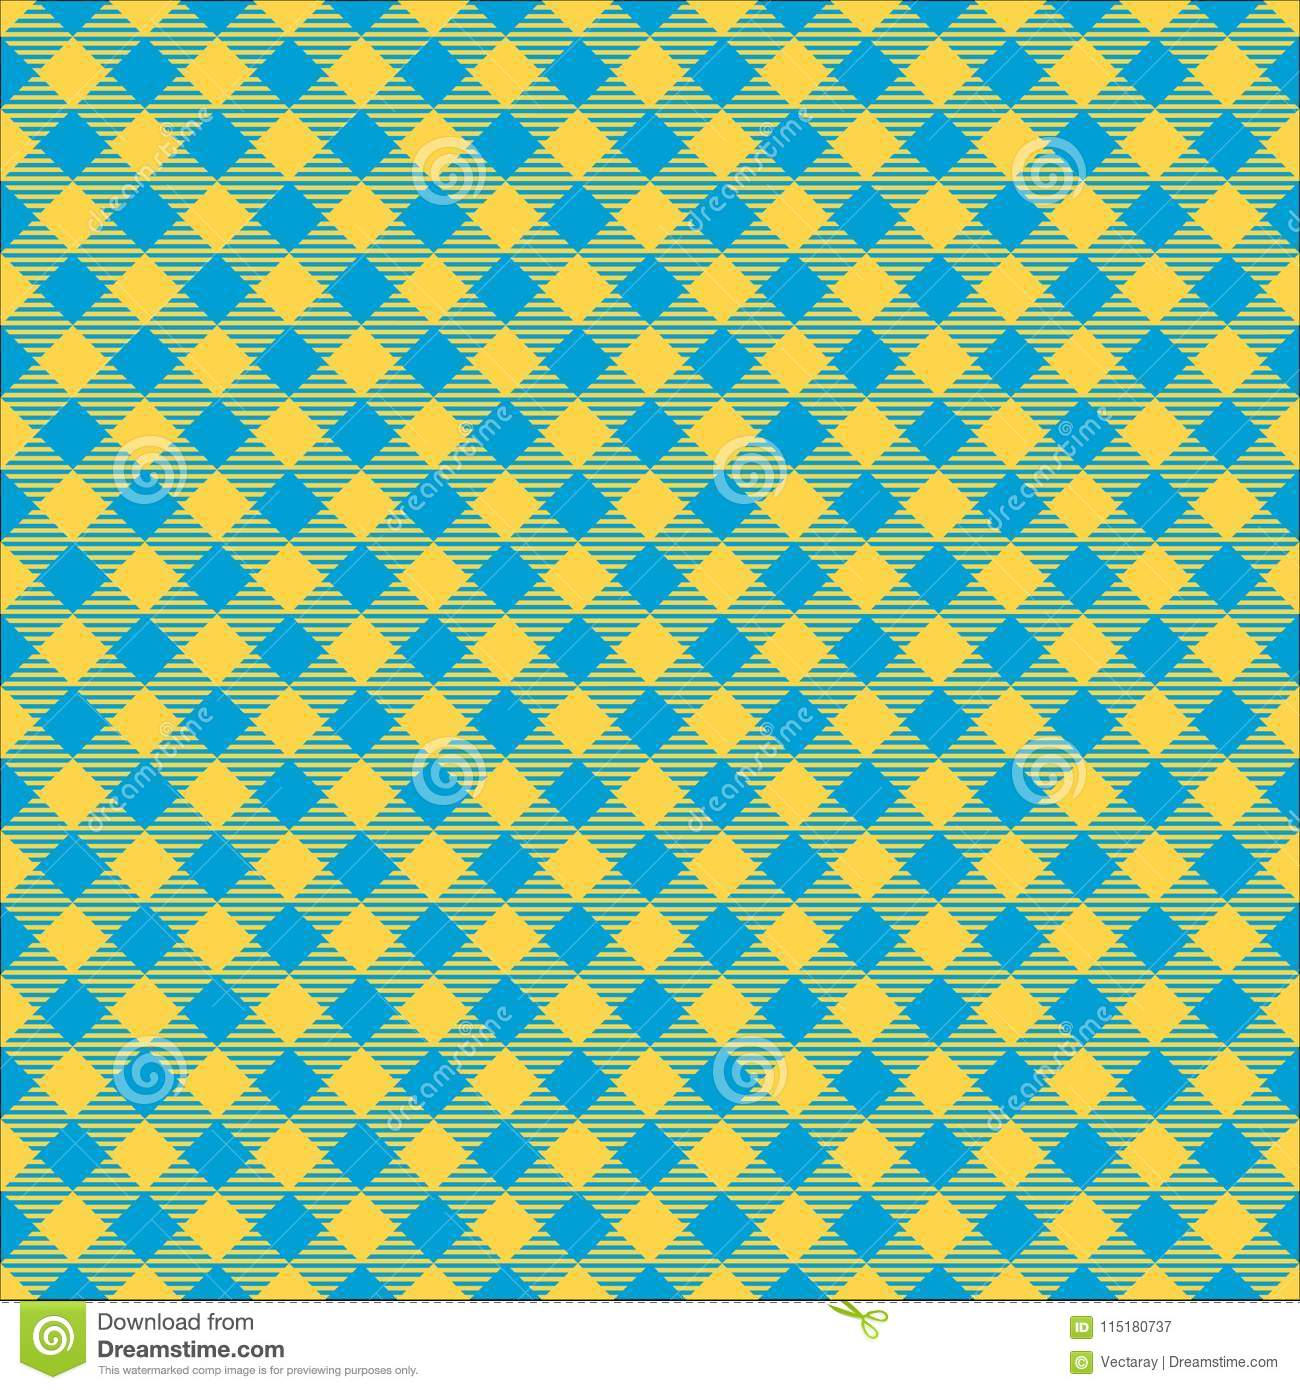 Seamless Blue And Lime Green Diagonal Checkered Fabric Pattern Background Texture